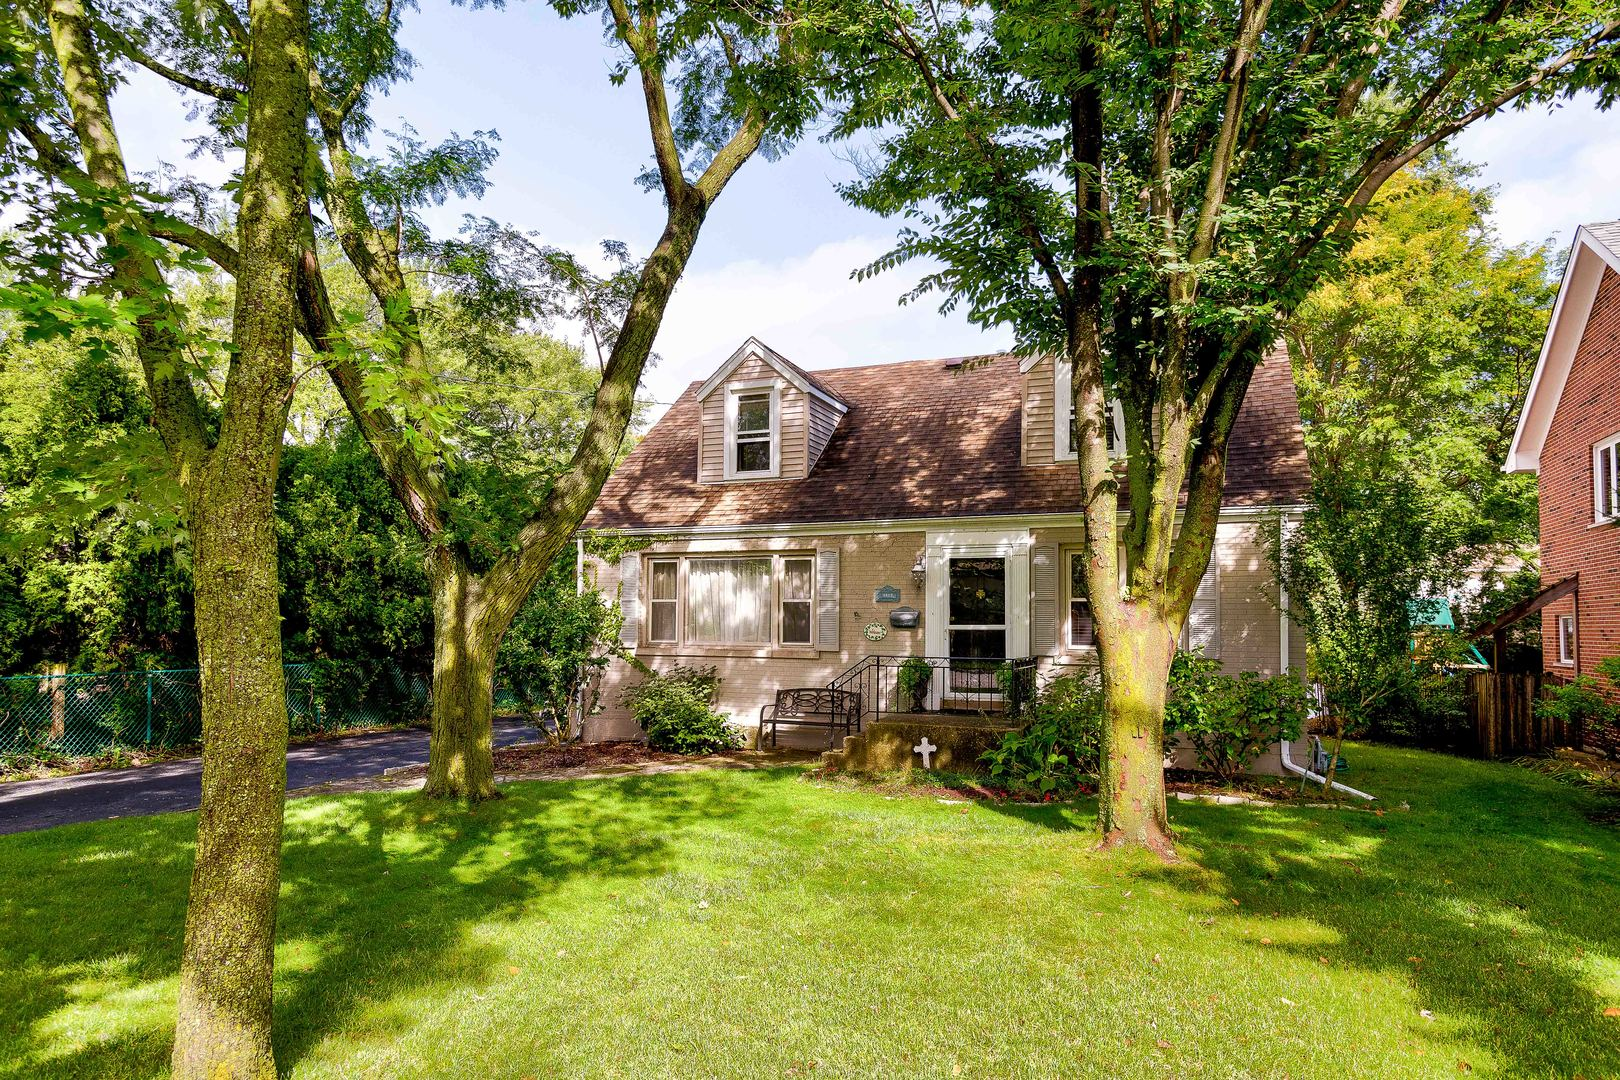 3812 Church Street 60203 - One of Evanston Homes for Sale